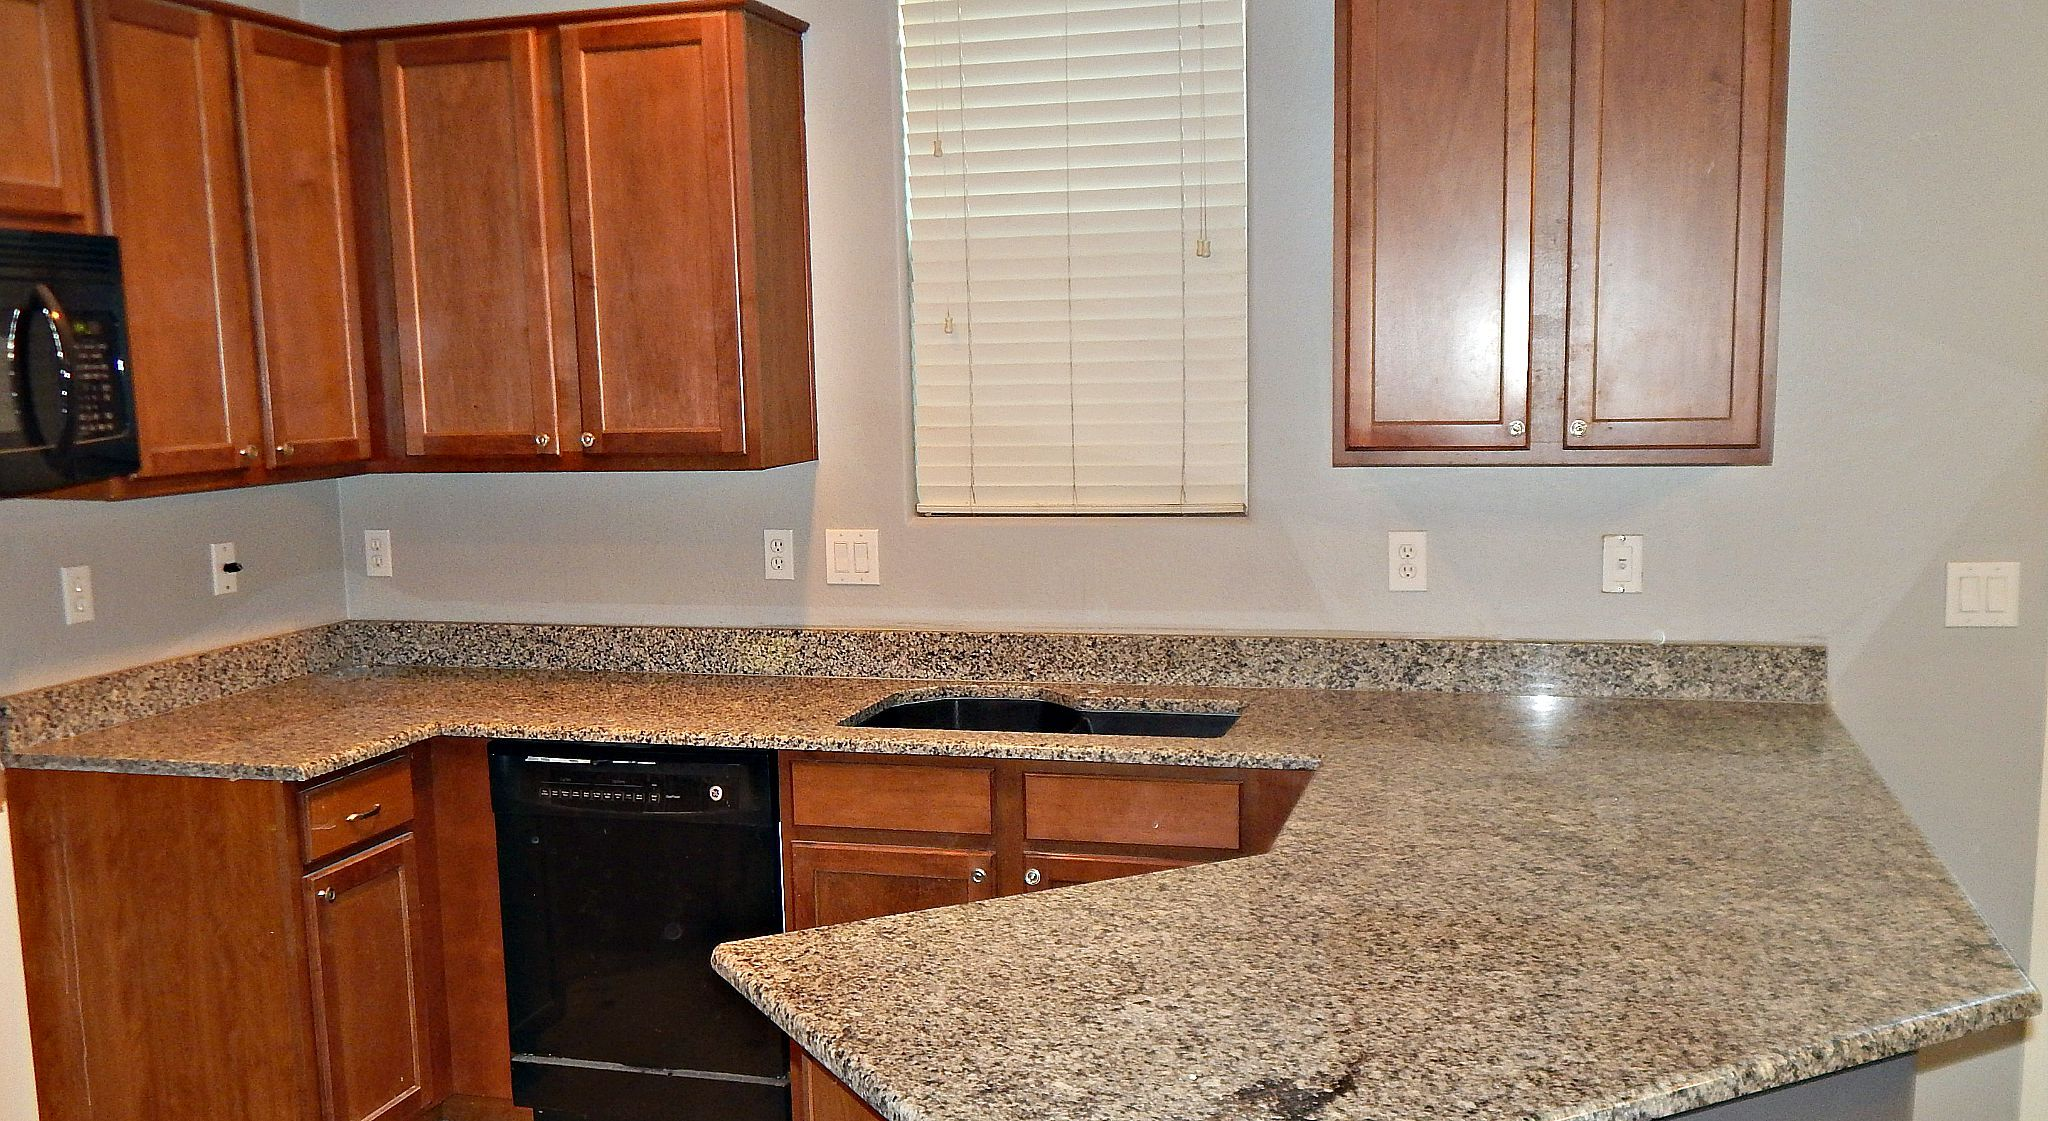 Sunset Gold Granite Countertop Remodel With Demi Bullnose Edge 4 Inch Back Splashes And 60 40 Granite Compo Granite Countertops Countertop Remodel Countertops